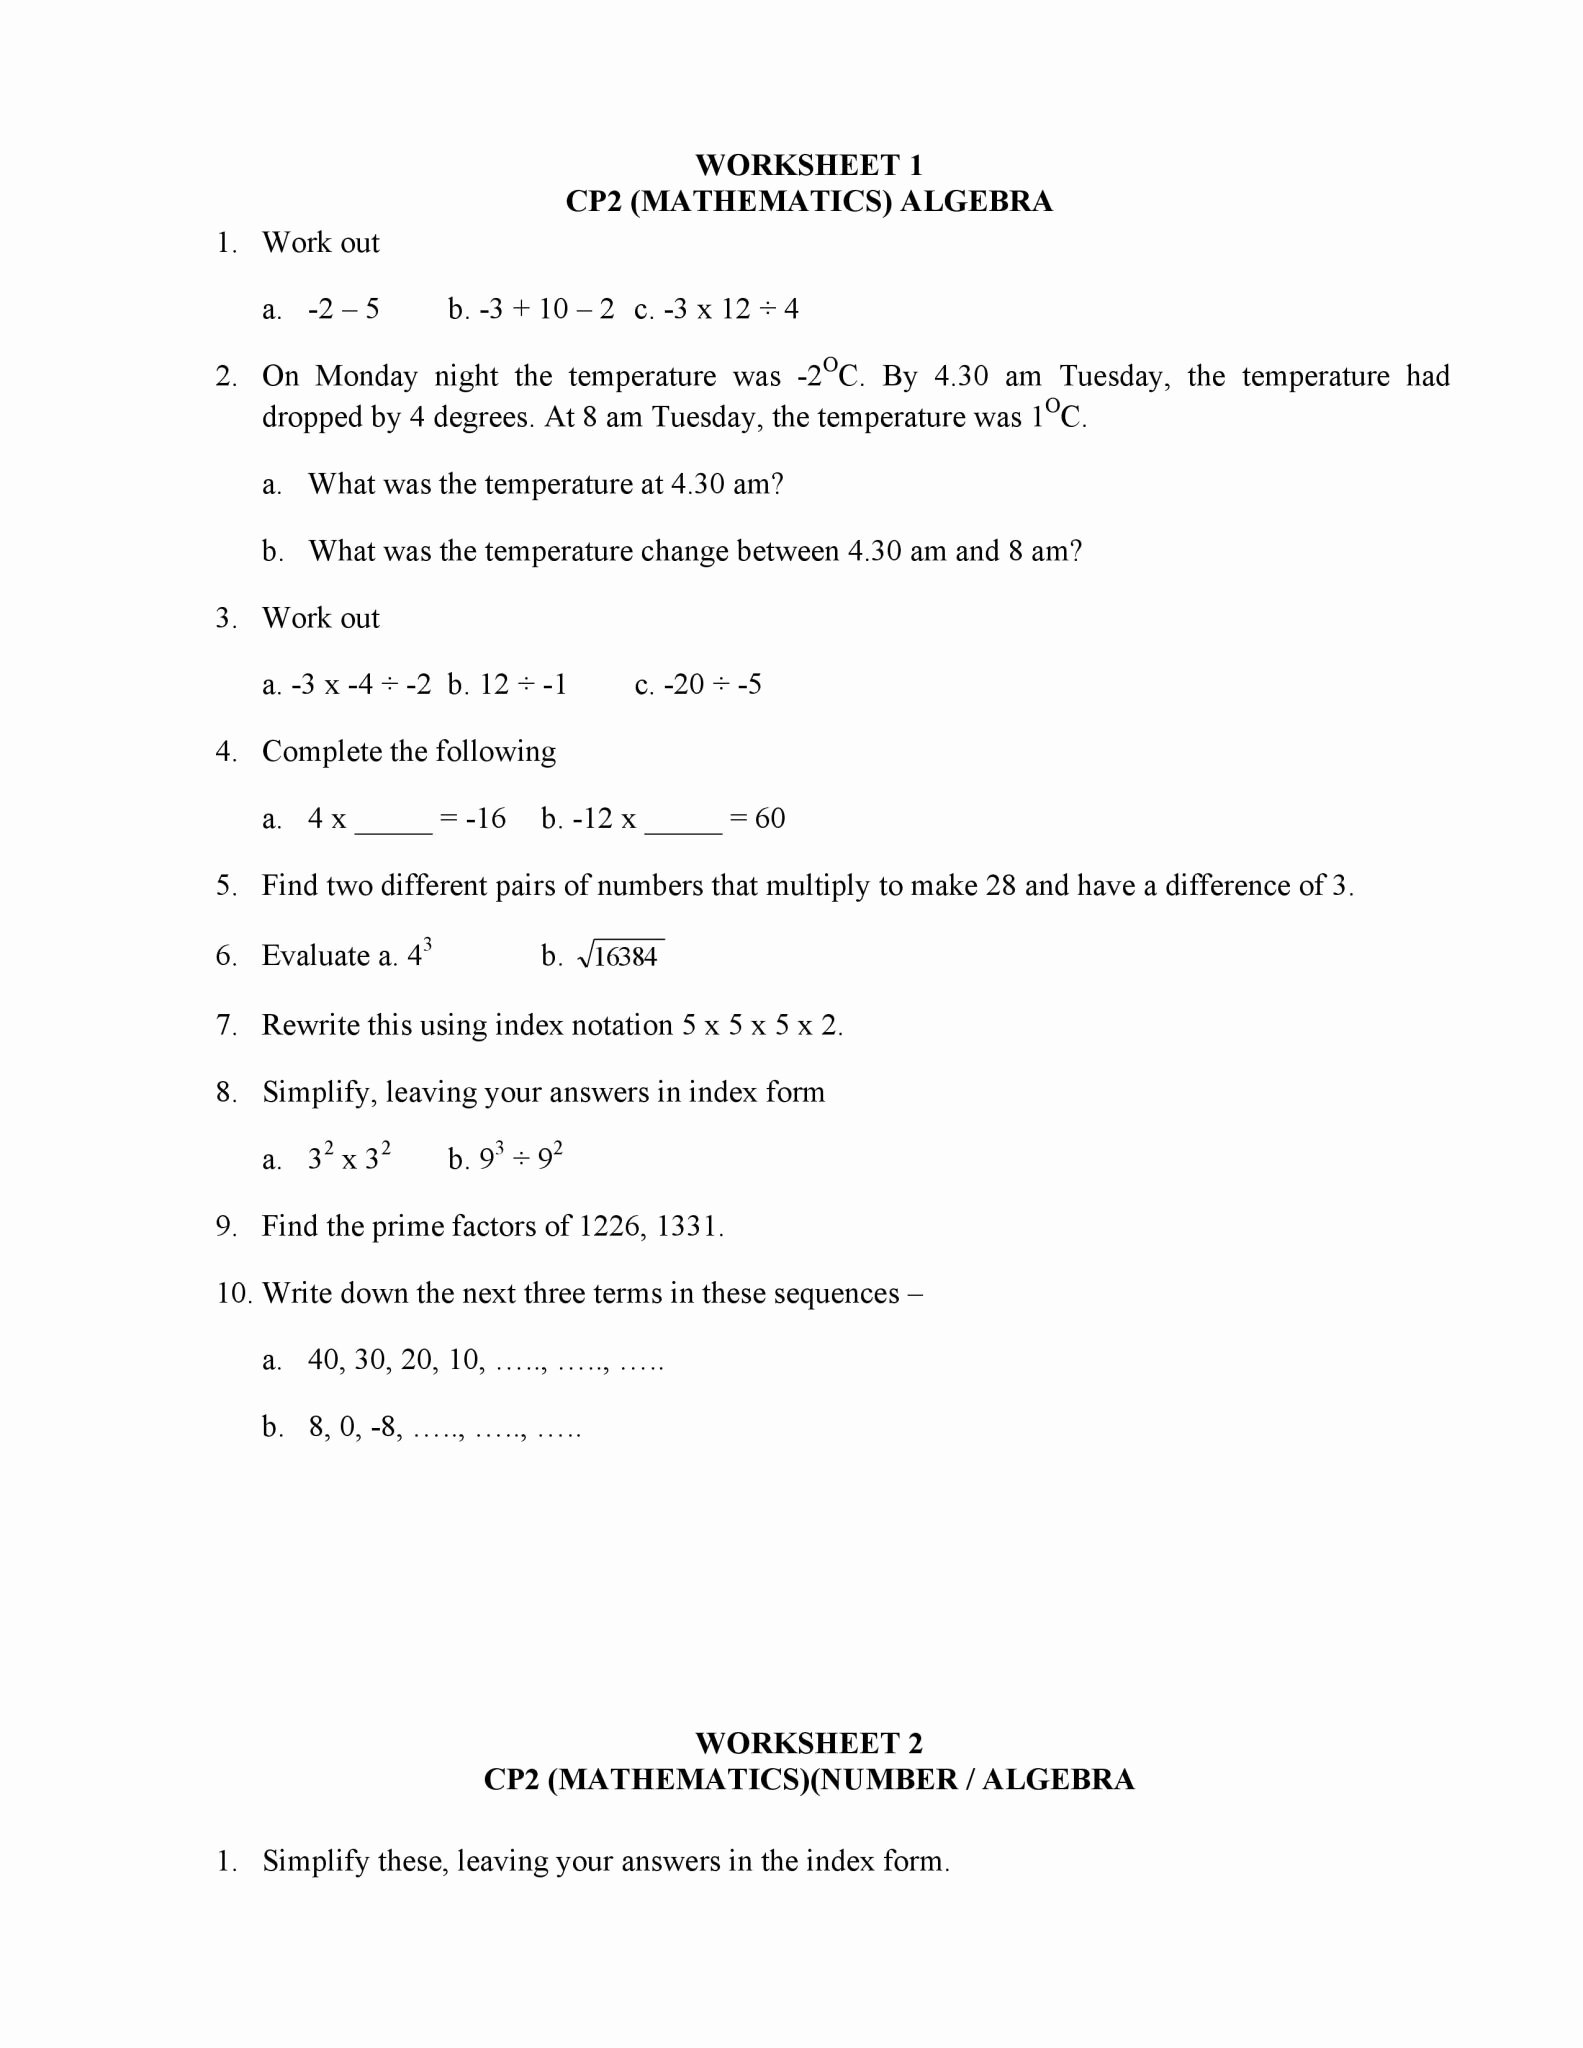 Arithmetic Sequences Worksheet Answers Unique Arithmetic Sequences Worksheet 1 Answer Key